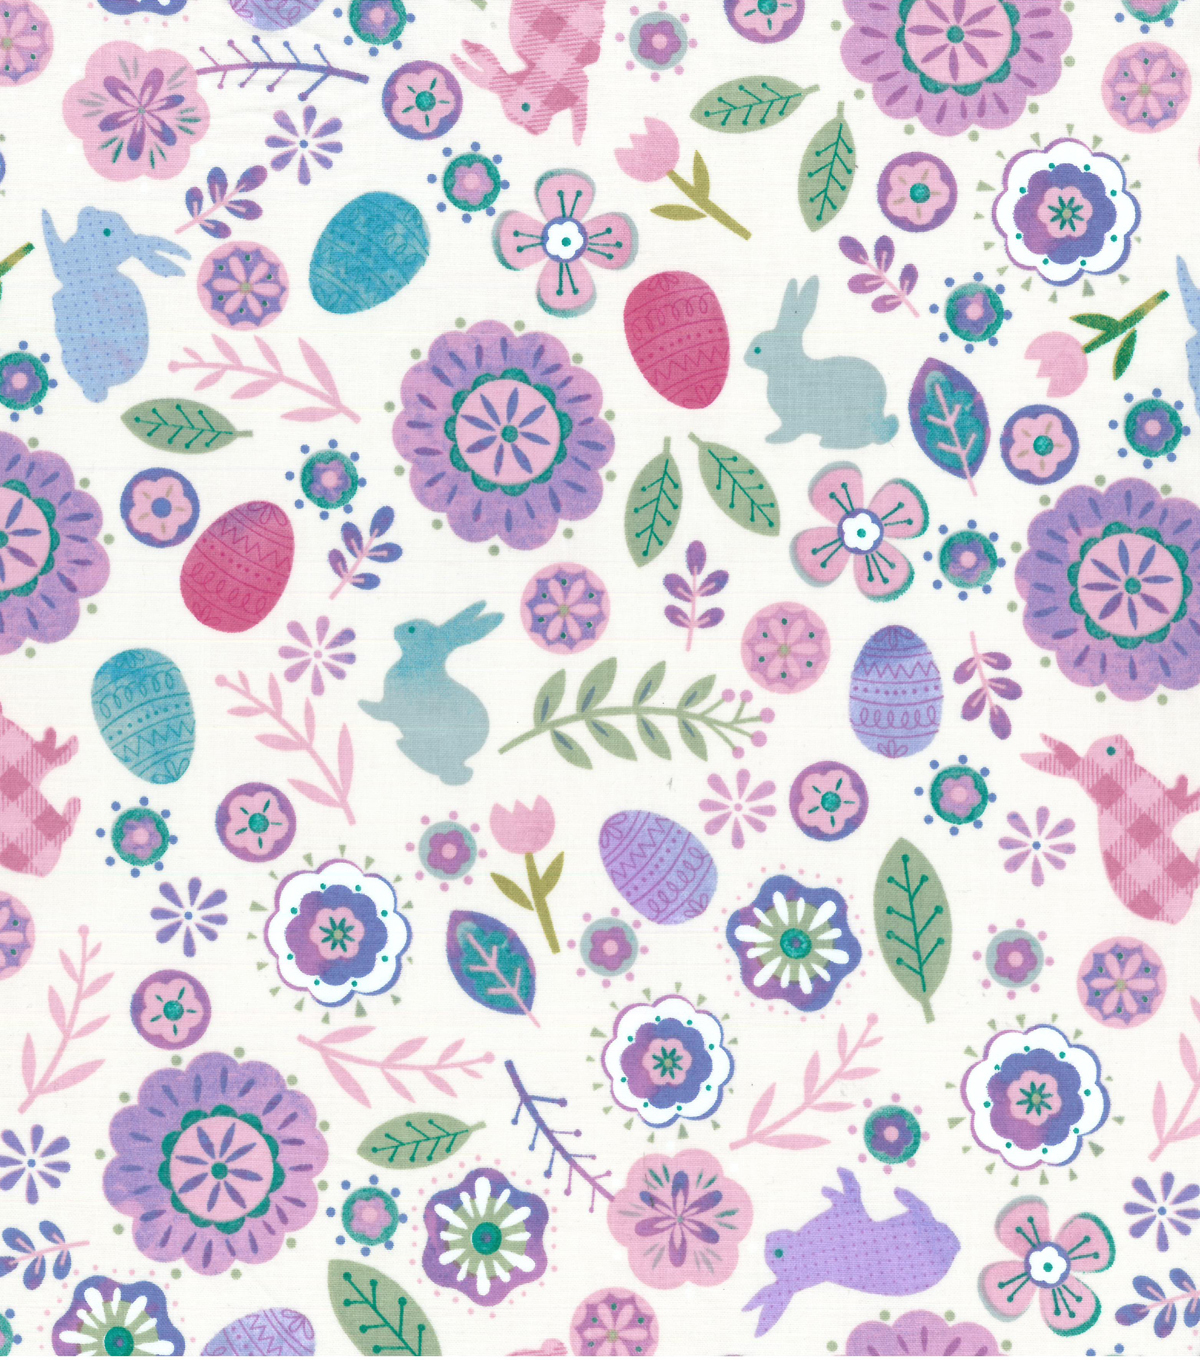 Easter Cotton Fabric-Mixed Theme Floral & Bunny